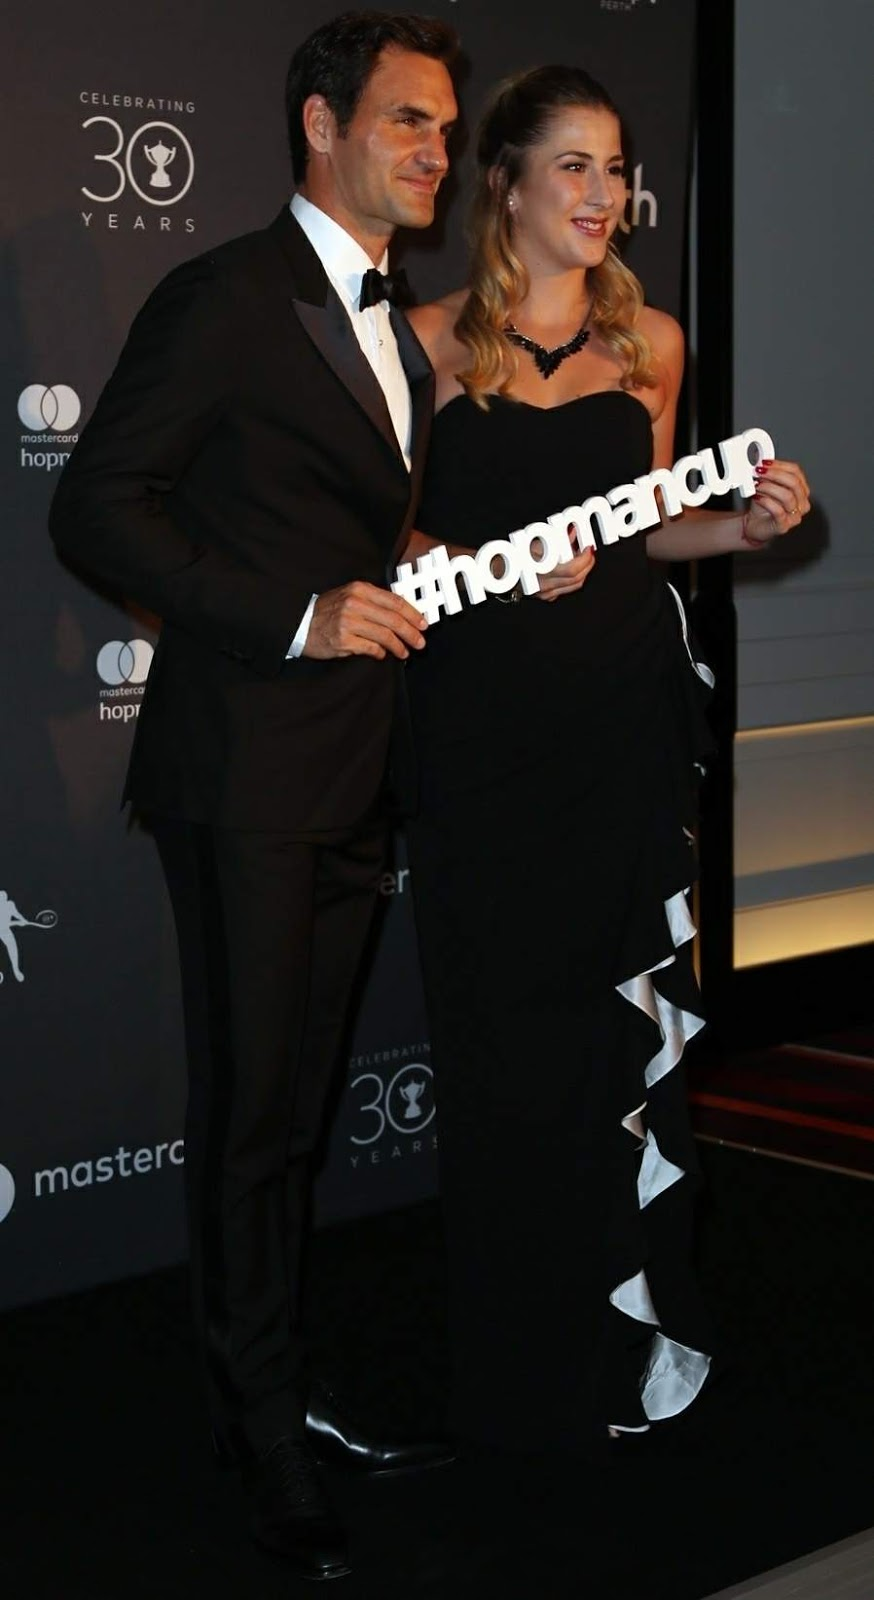 Belinda Bencic and Roger Federer Posing at Hopman Cup New Years Eve